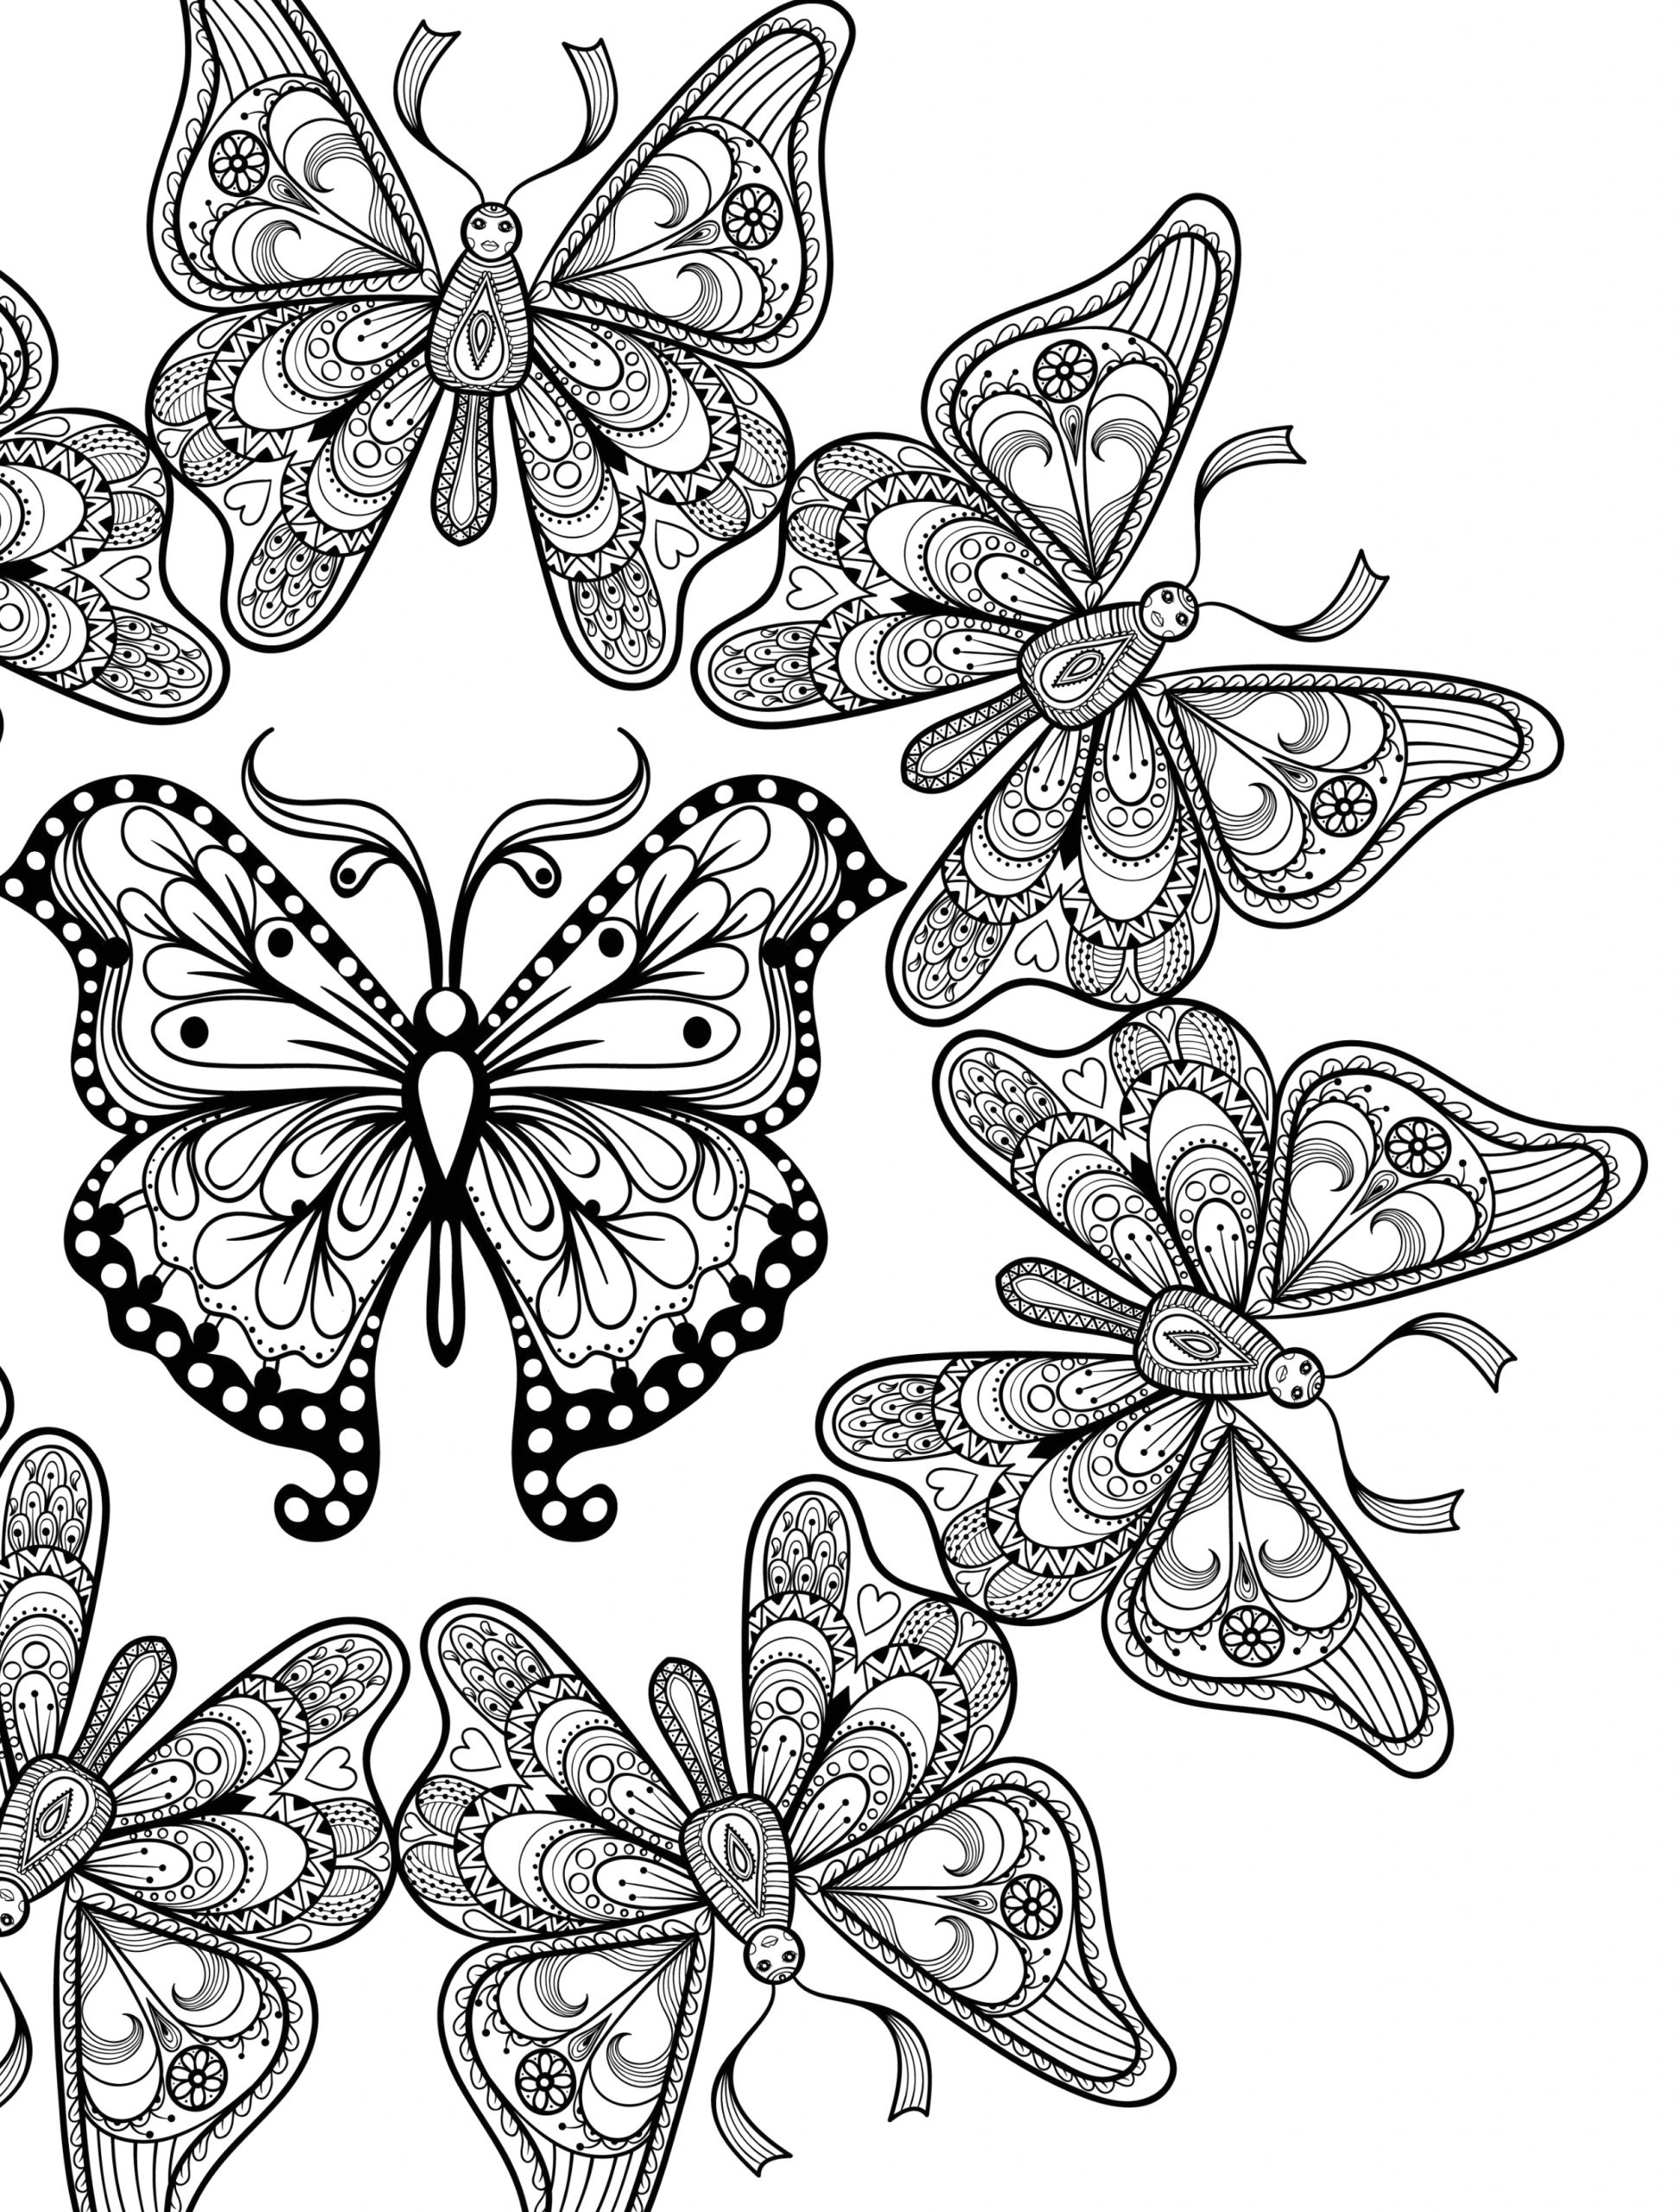 Free Printable butterfly Coloring Pages for Adults Free butterfly Colouring Pages for Adults